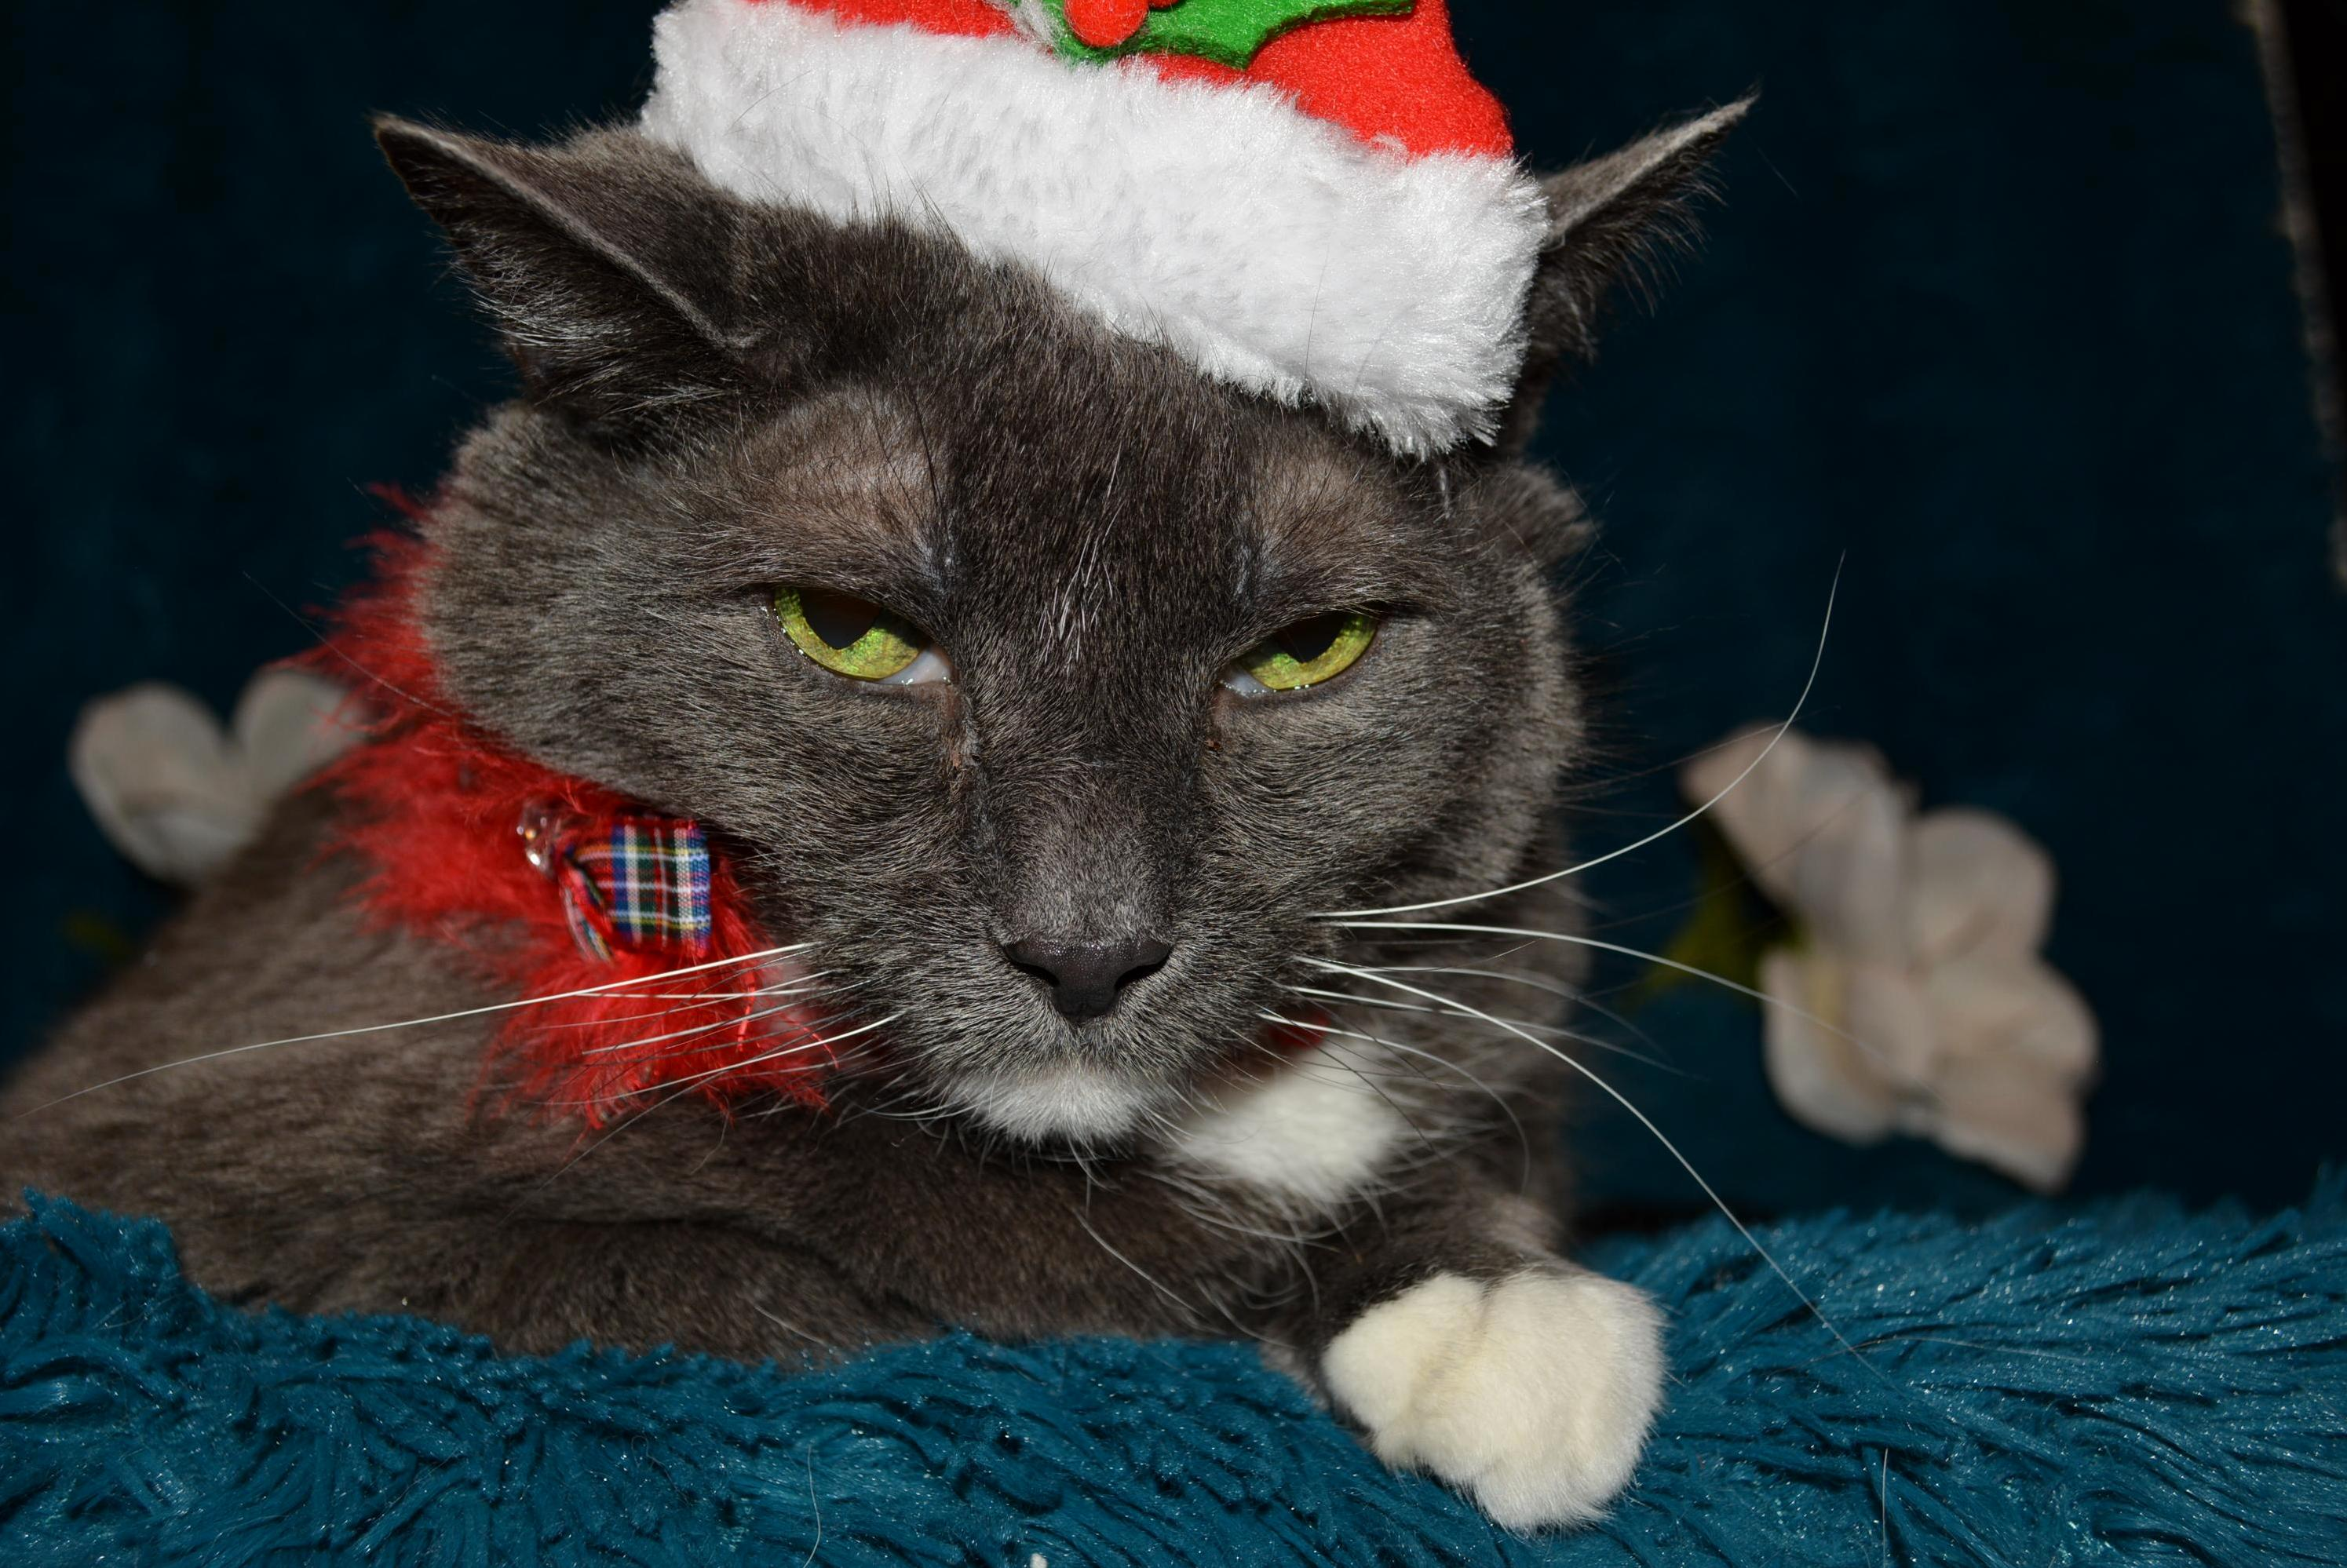 Geeeesh looks like somekitty is a grinch this year…